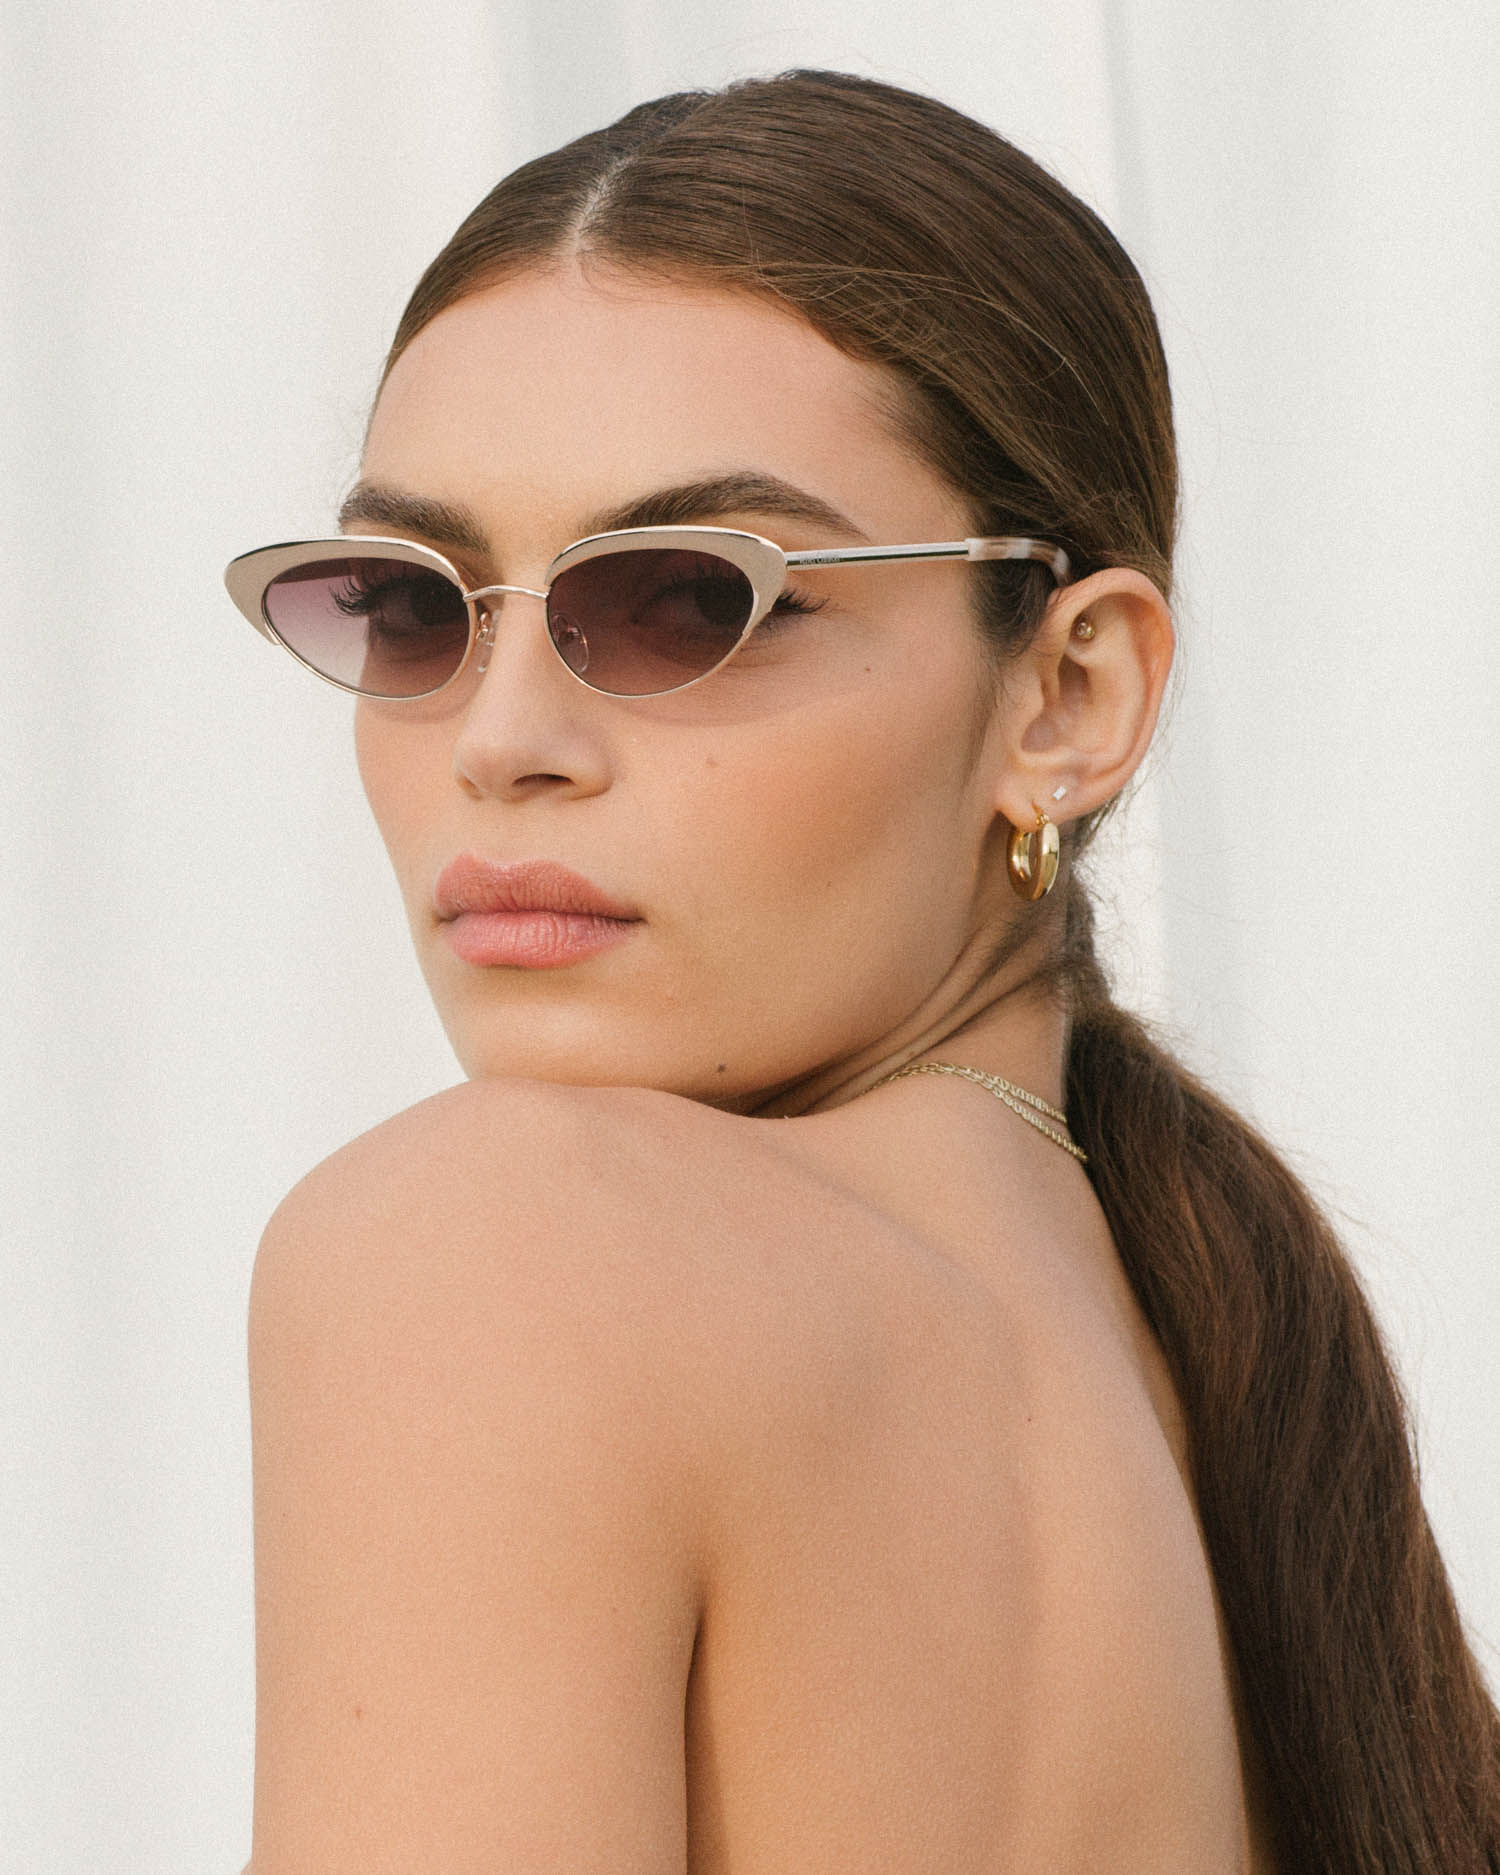 Velvet Canyon Casa Gold Sunglasses vintage 40s 50s 60s 70s inspired sunnies cat eye modern small petite wire metal frame